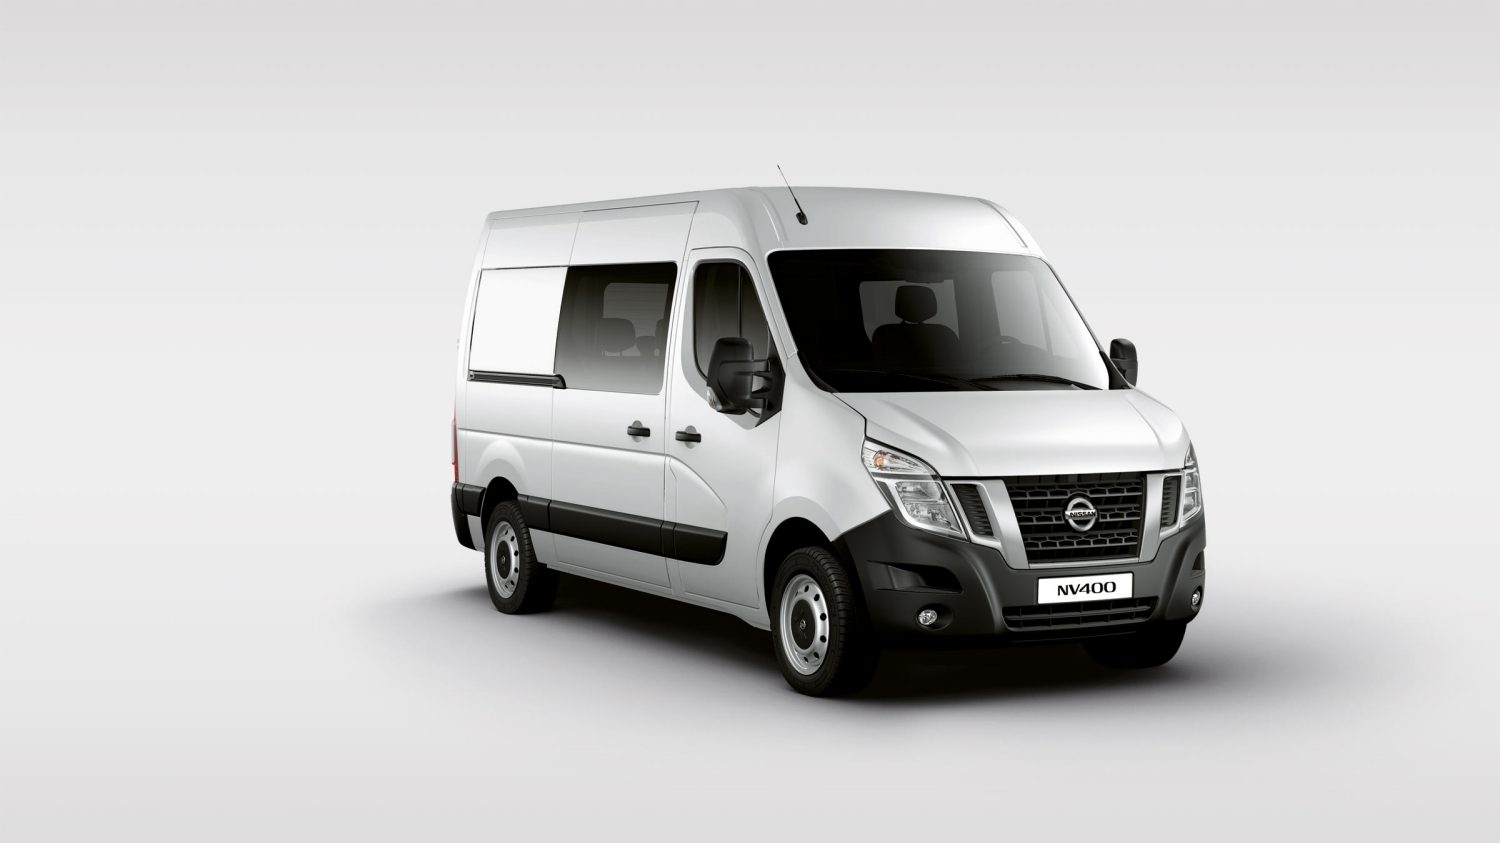 Nissan NV400 Gris - Vista Lateral 7/8